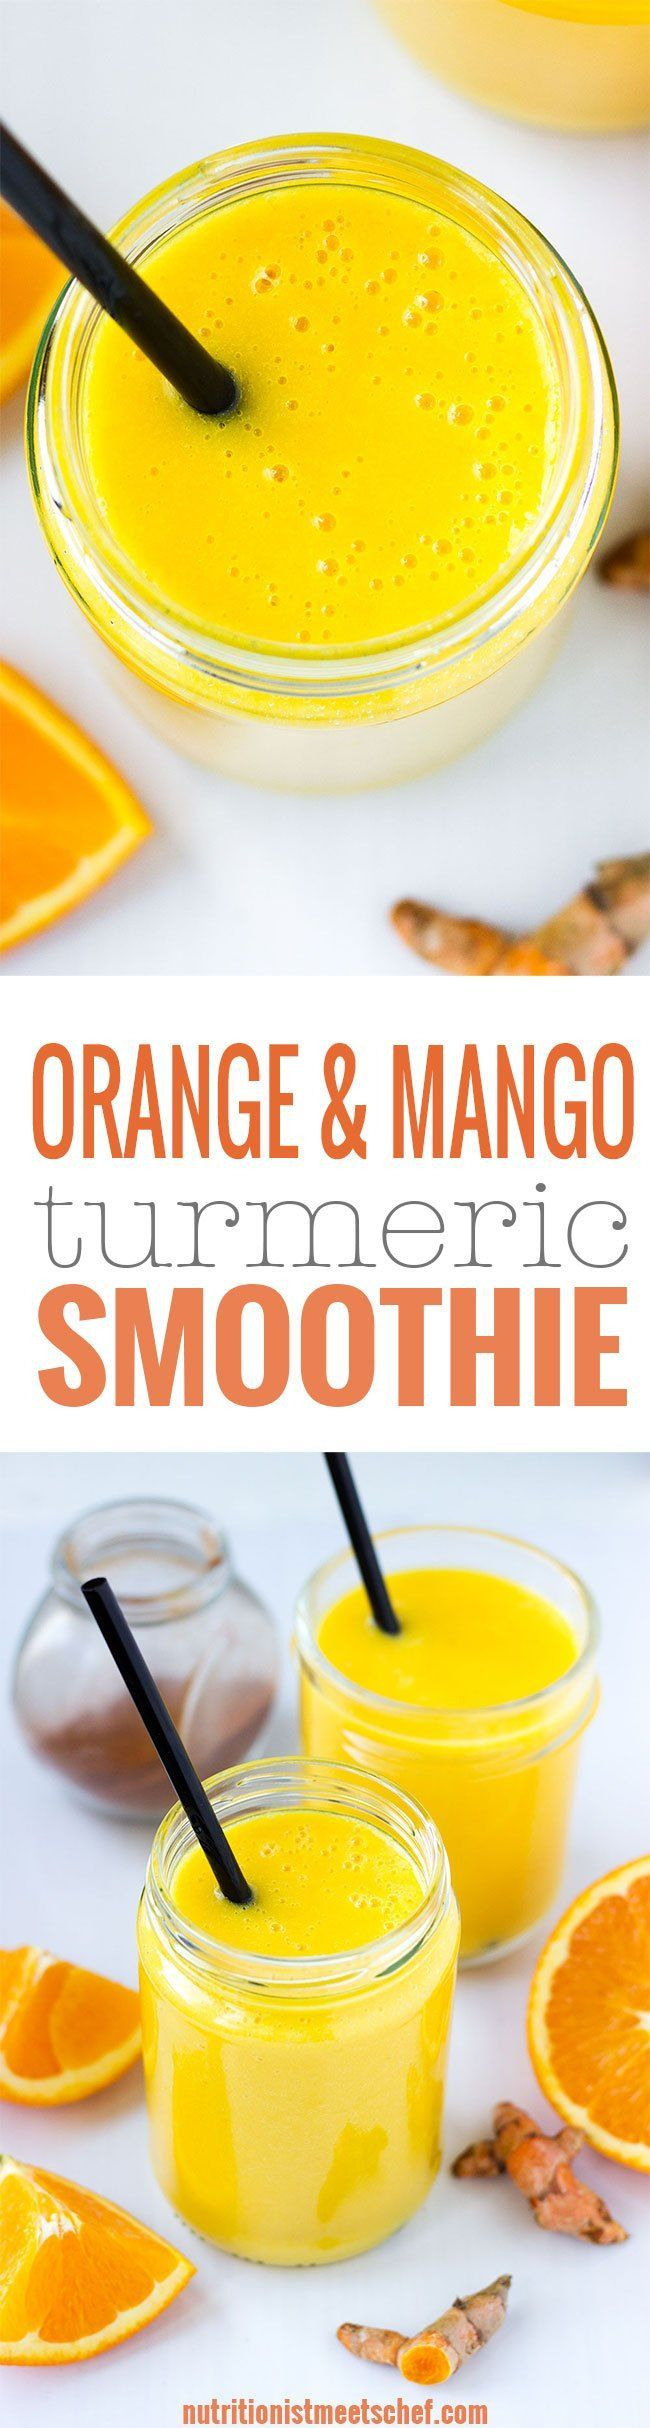 Orange Mango Turmeric Smoothie! Immune boosting smoothie that is full of nutrients and flavour! Get the recipe at nutritionistmeets...